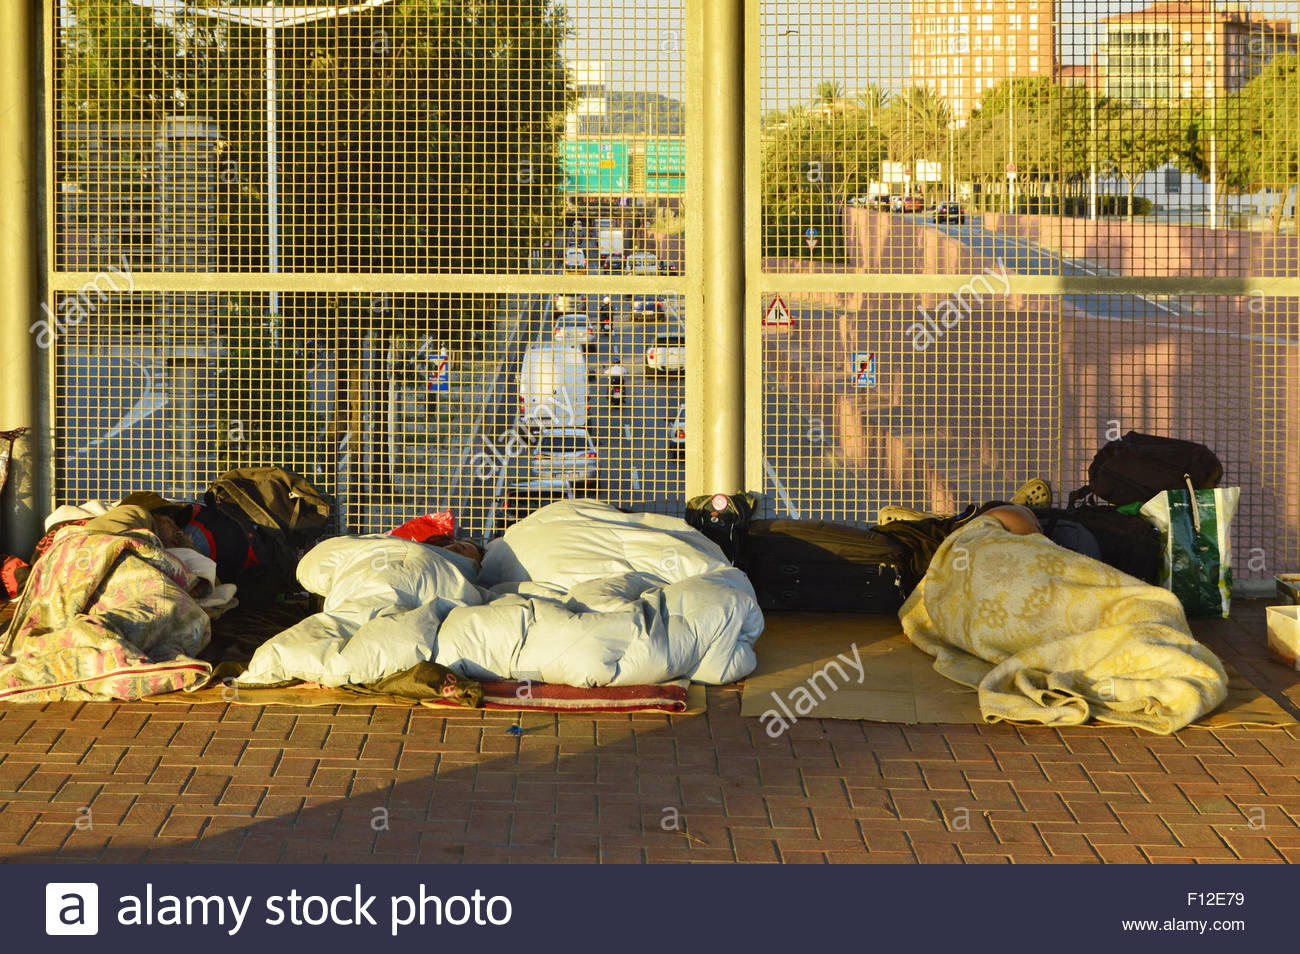 homeless people spain stockfotos homeless people spain bilder alamy. Black Bedroom Furniture Sets. Home Design Ideas